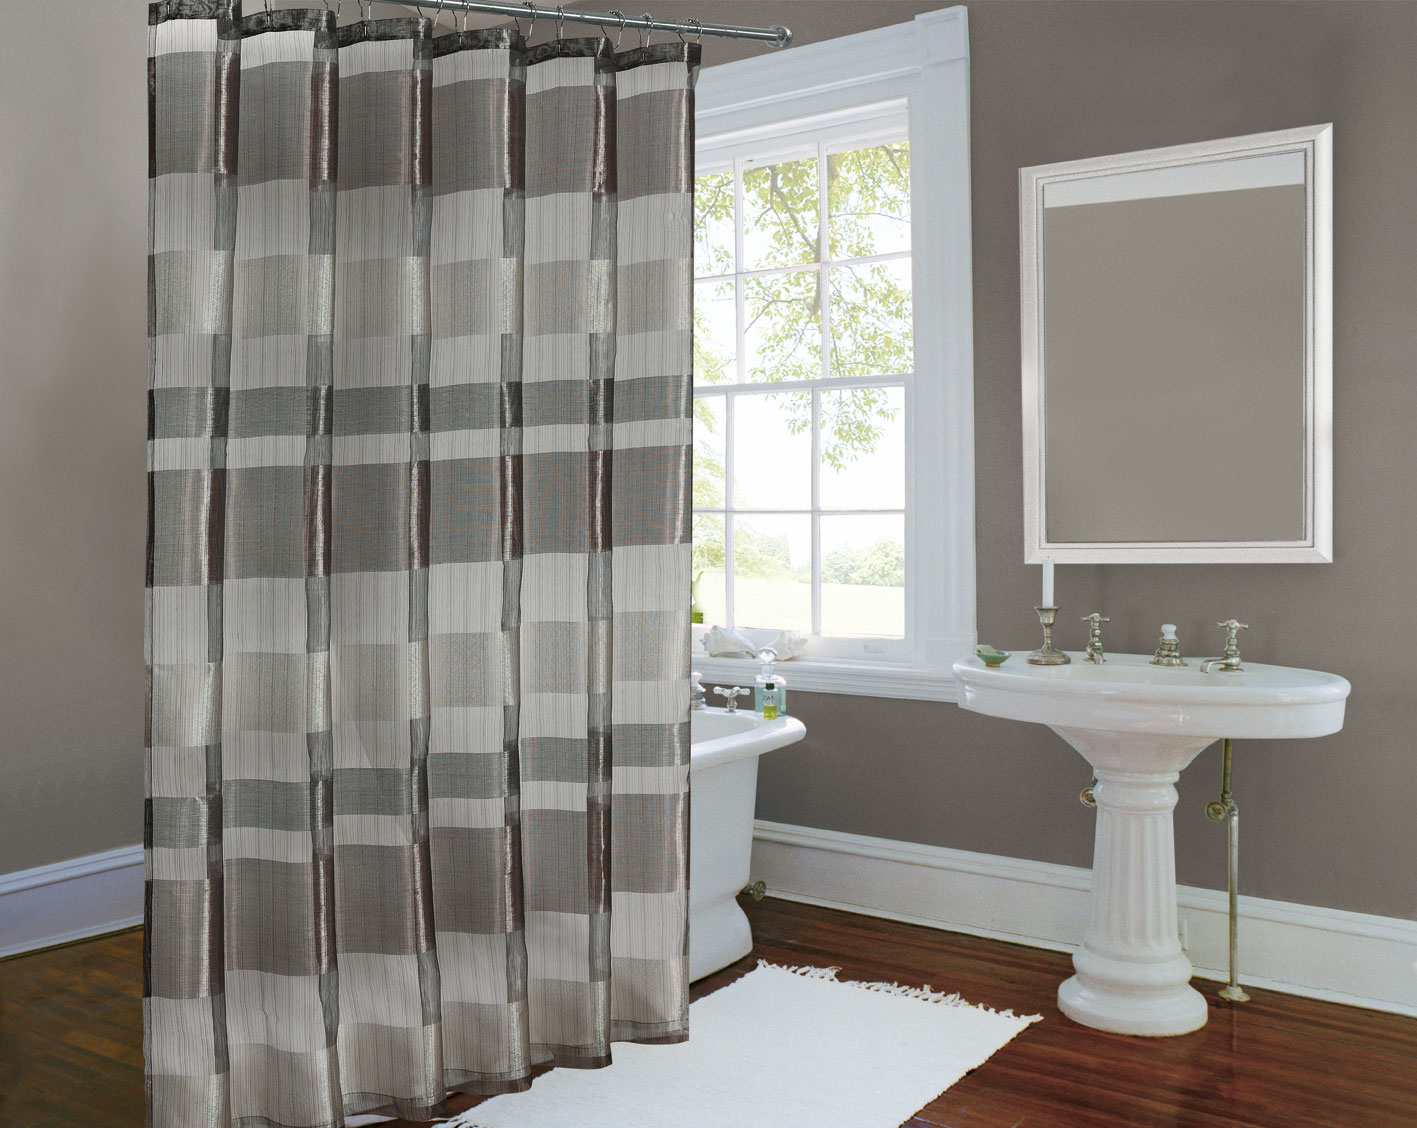 Charming Decoration Gray And White Striped Shower Curtain within dimensions 1417 X 1128